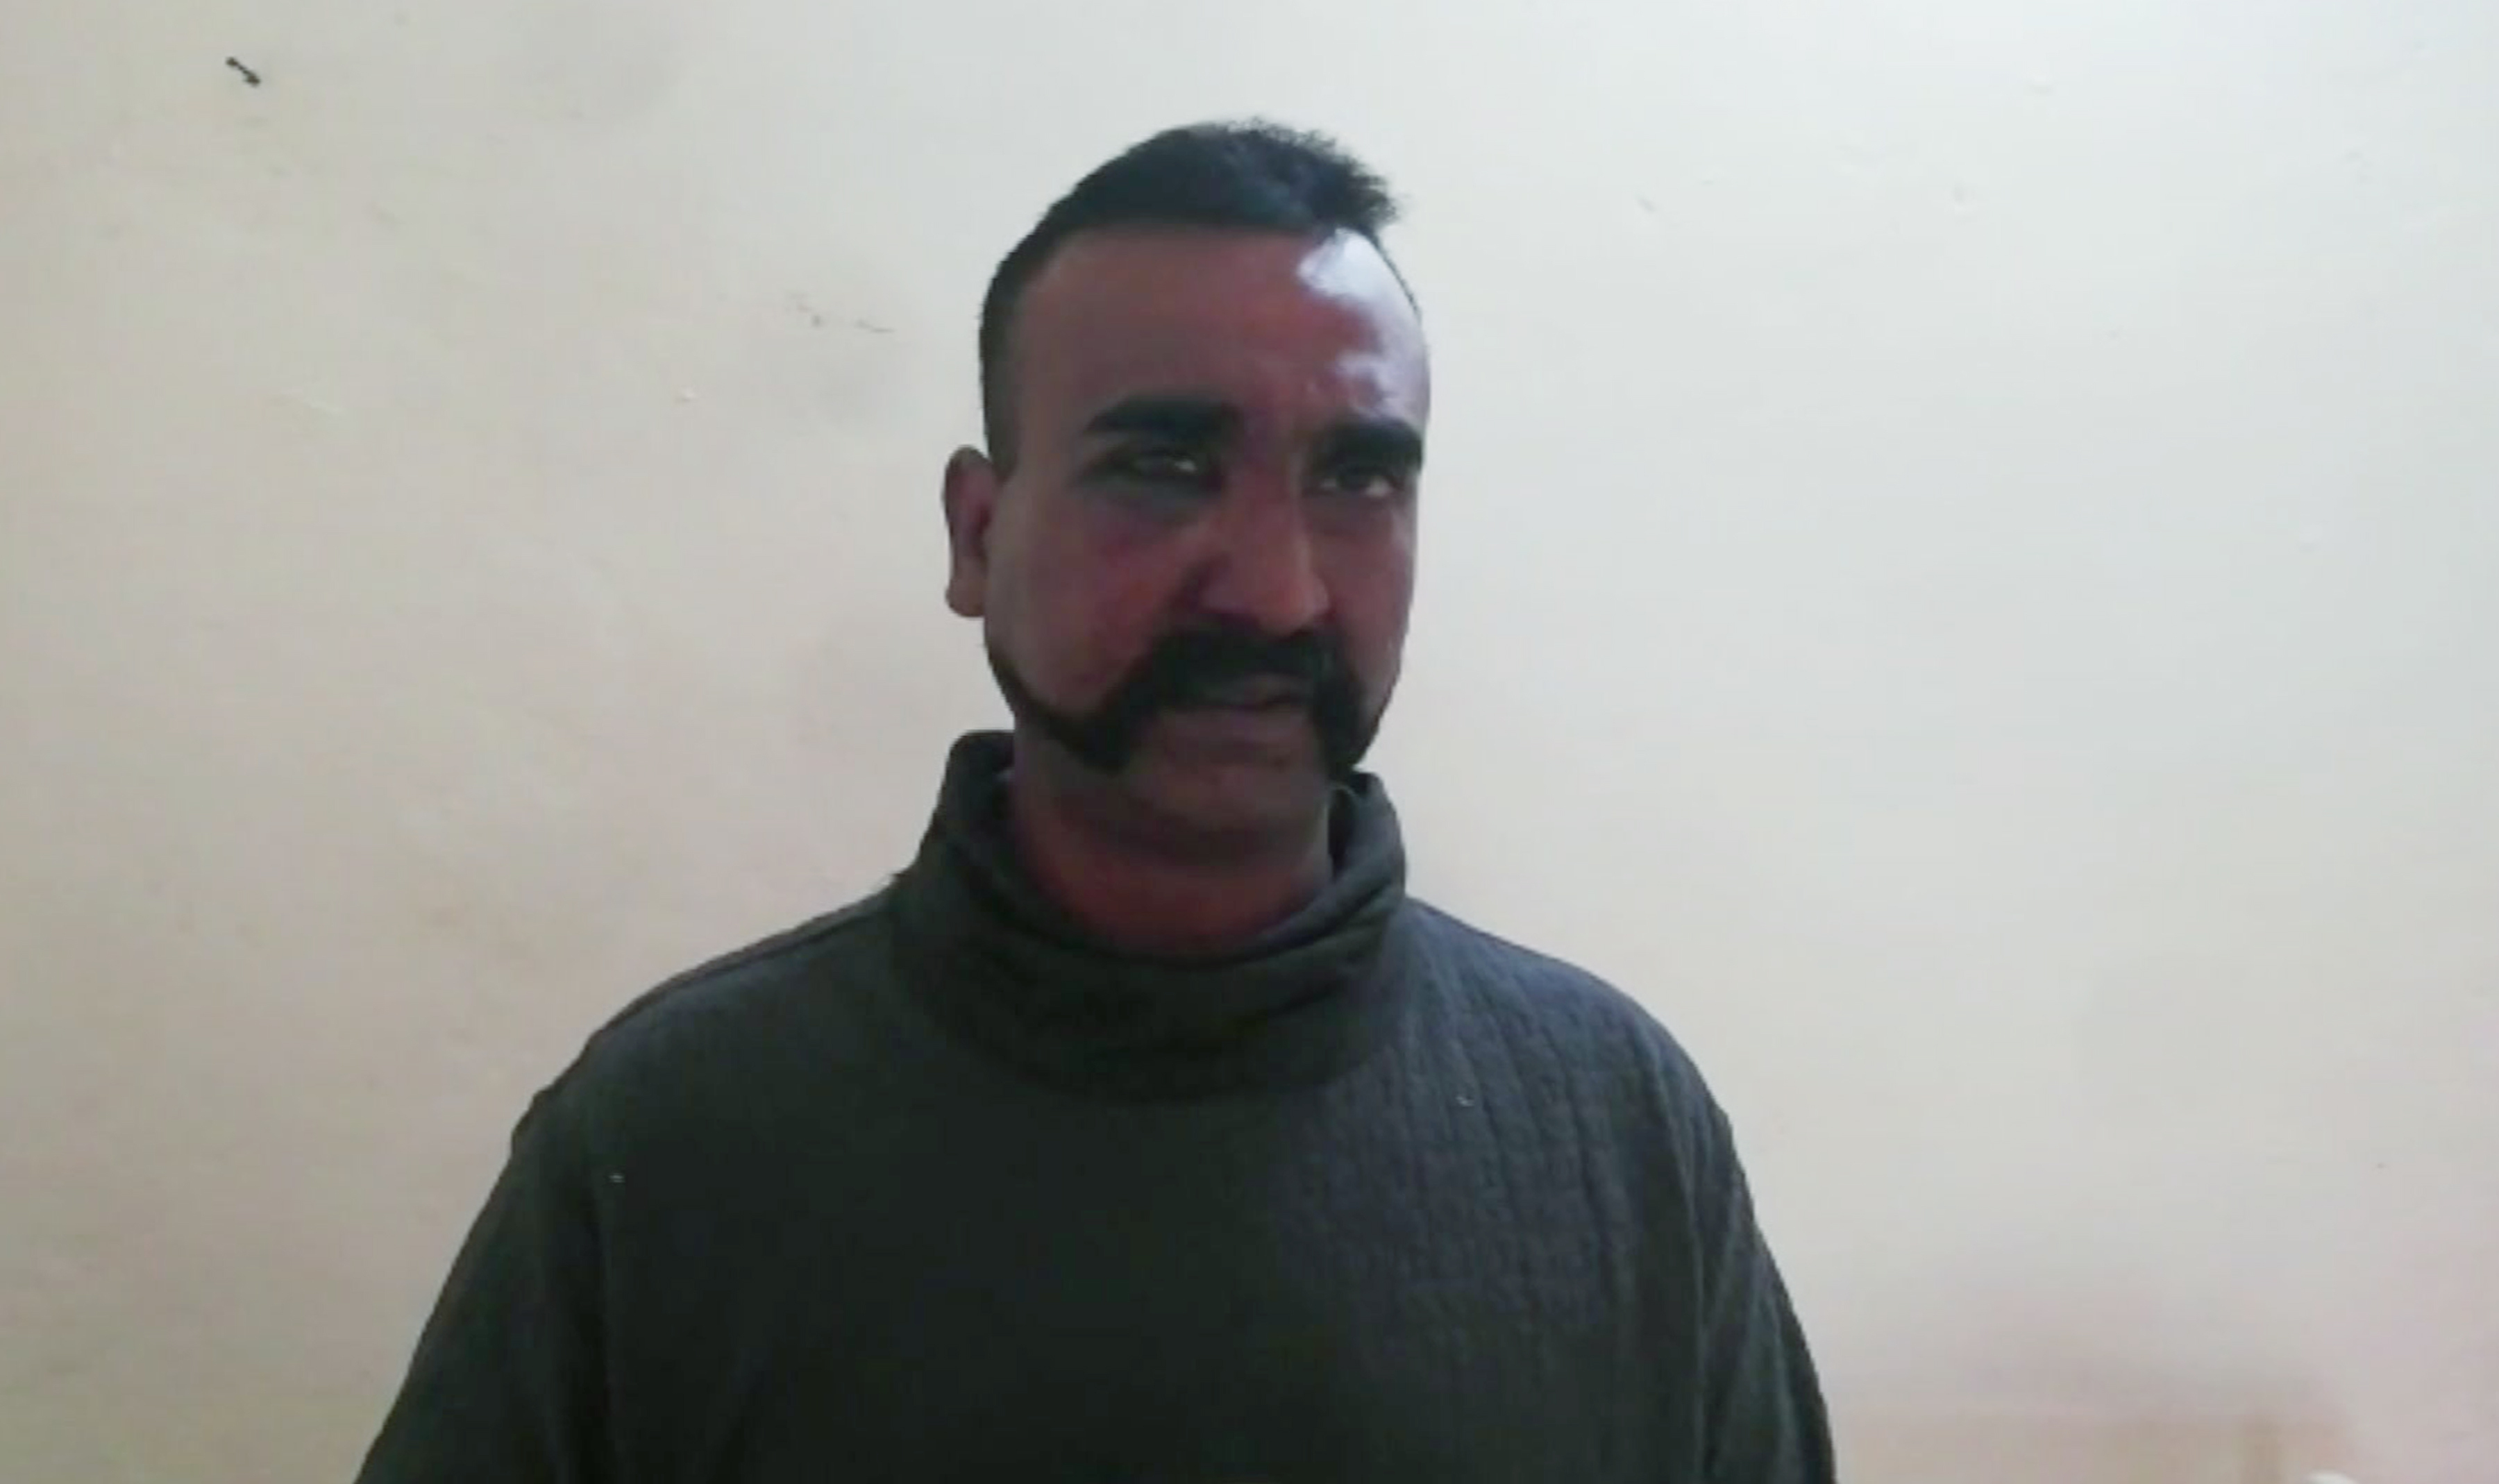 An image taken from a video released by Pakistan's military shows an Indian pilot identified as Wing Commander Abhinandan.